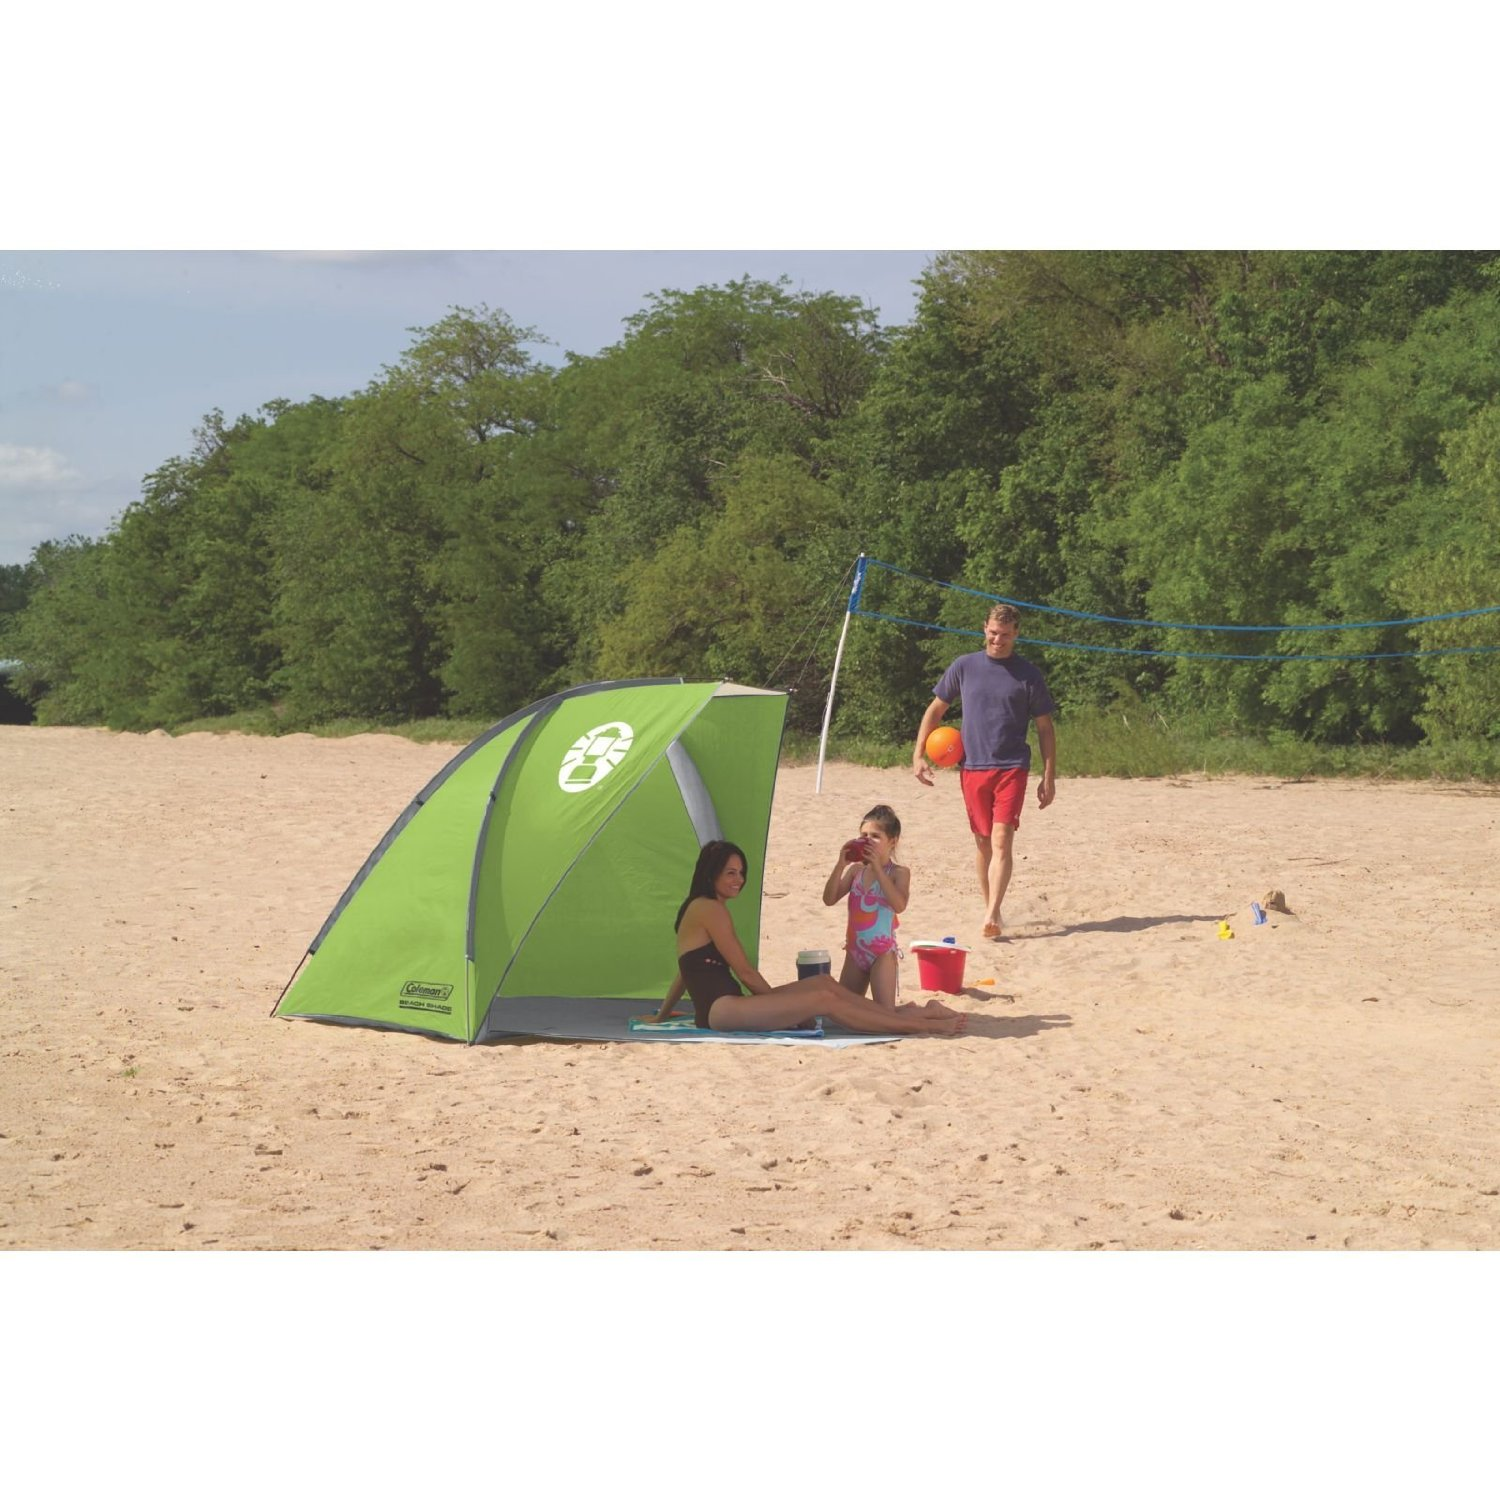 sc 1 st  Tent Buying Guide : sun tents for infants - memphite.com